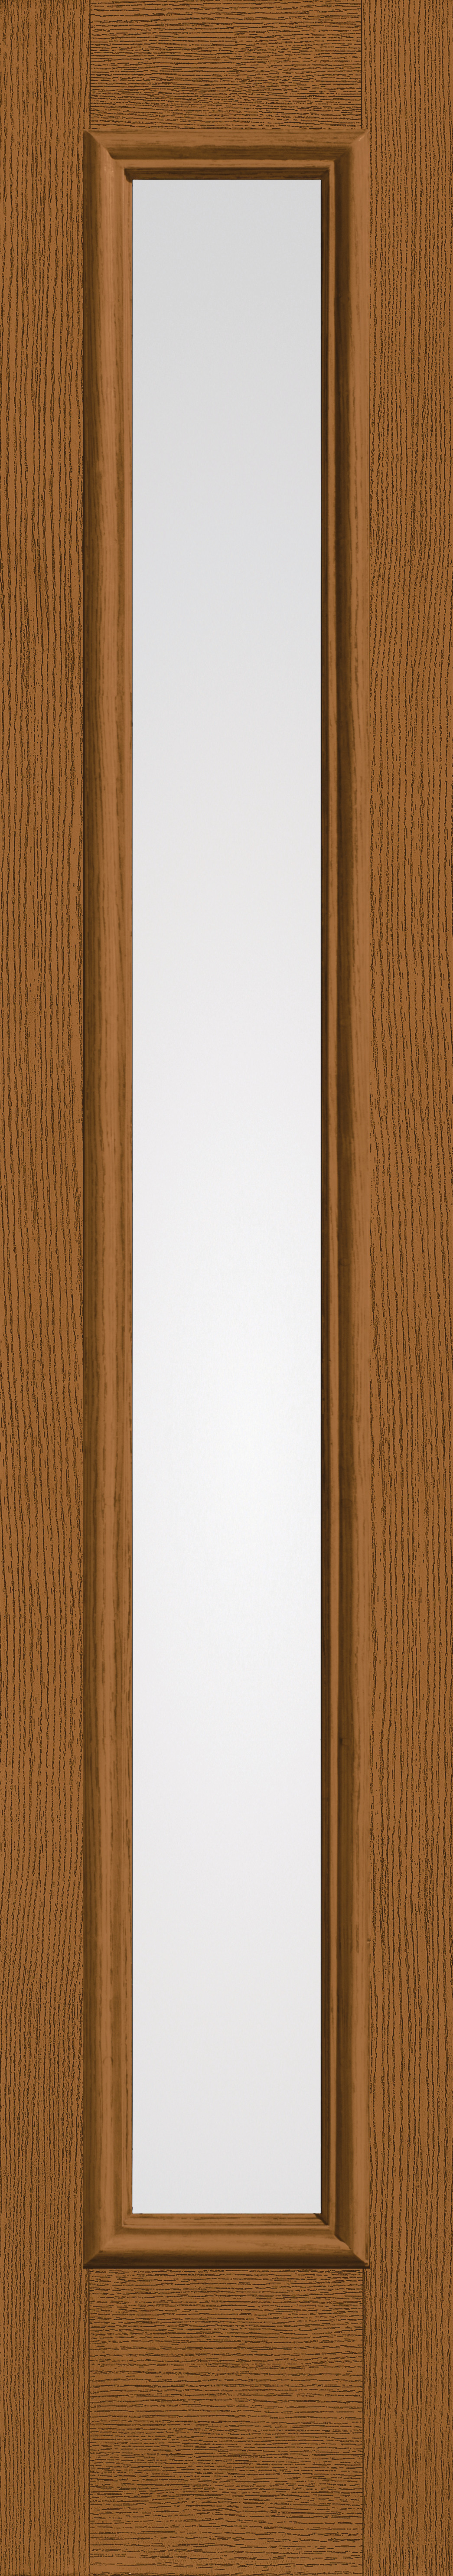 New Therma-Tru Benchmark Products Available at Lowes | Benchmark Doors